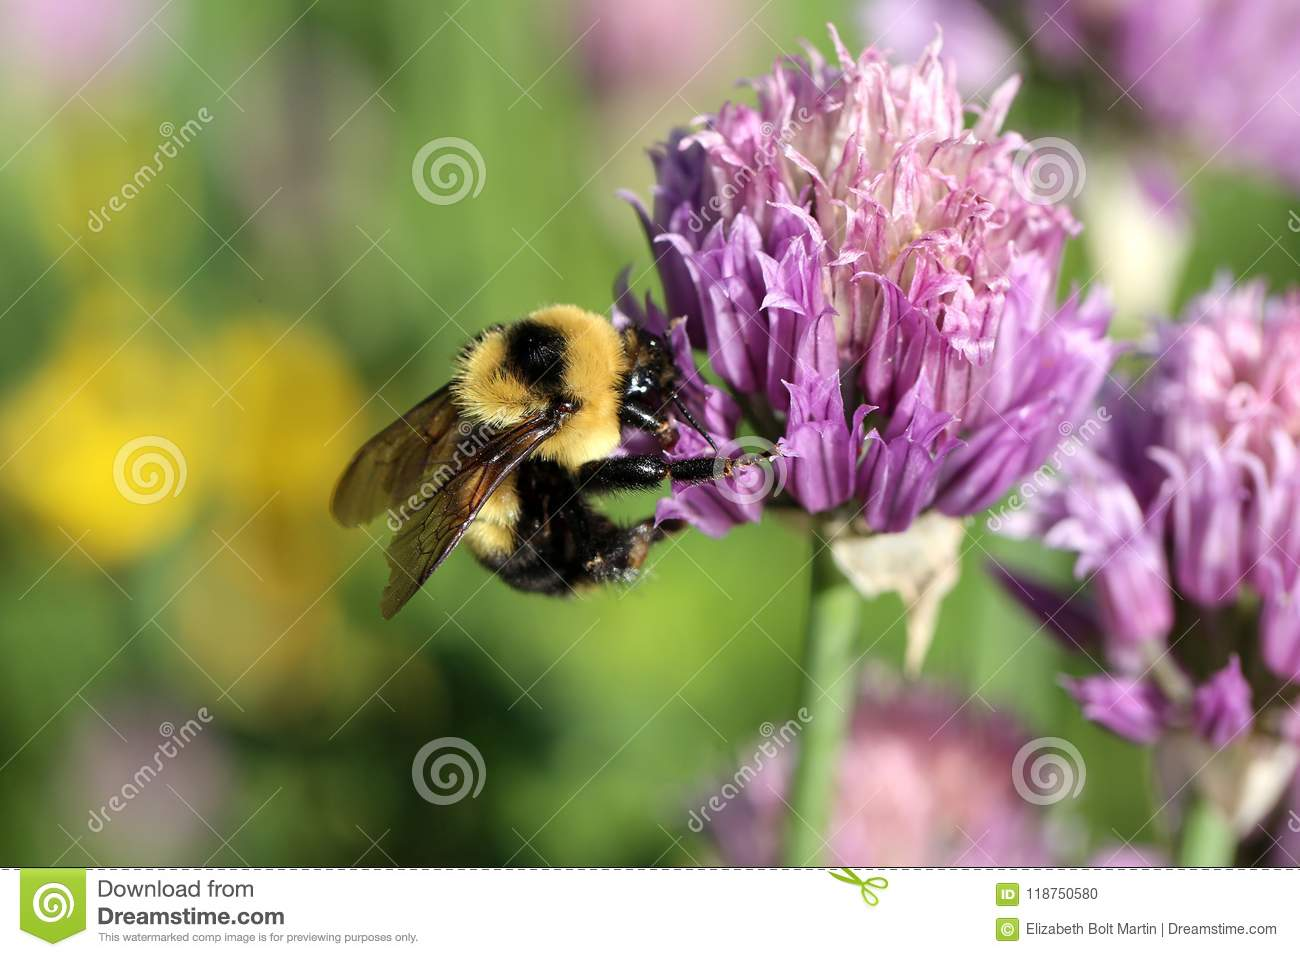 Bumblebee on wild purple flower stock photo image of fuzzy wings download bumblebee on wild purple flower stock photo image of fuzzy wings 118750580 mightylinksfo